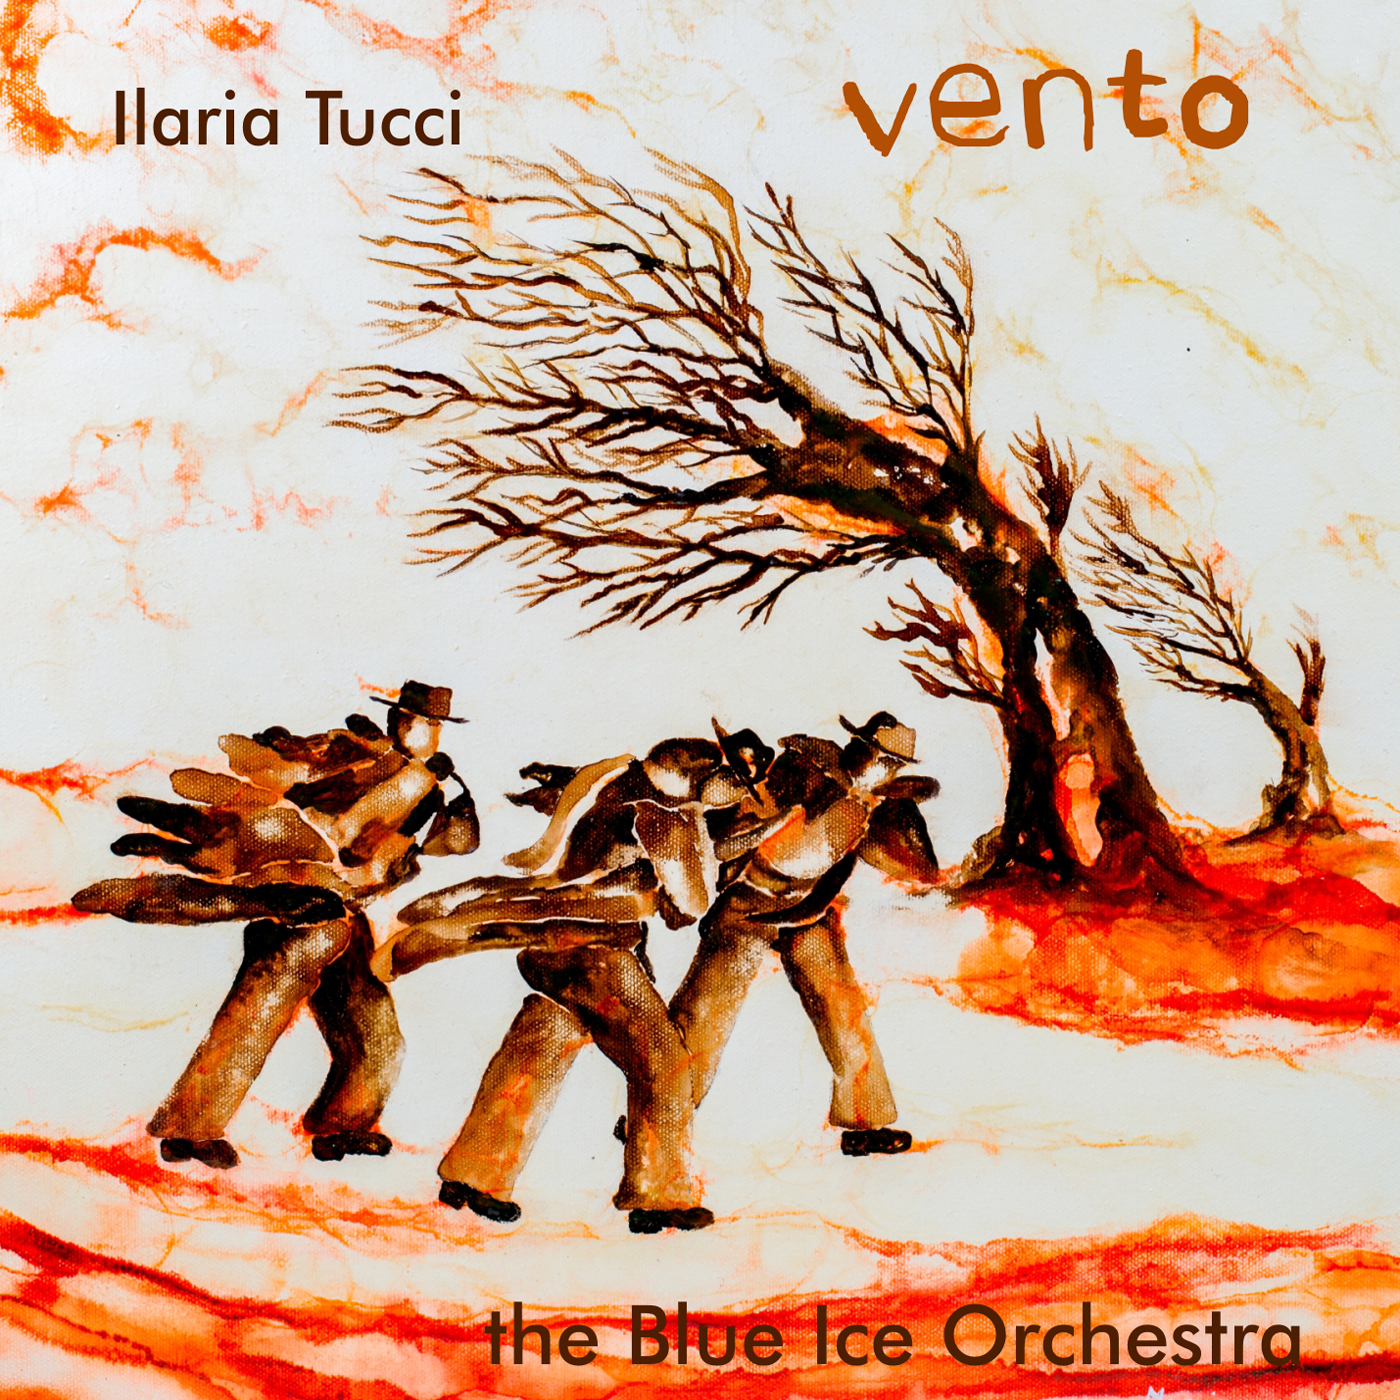 Ilaria Tucci & the Blue Ice Orchestra: Vento is out!